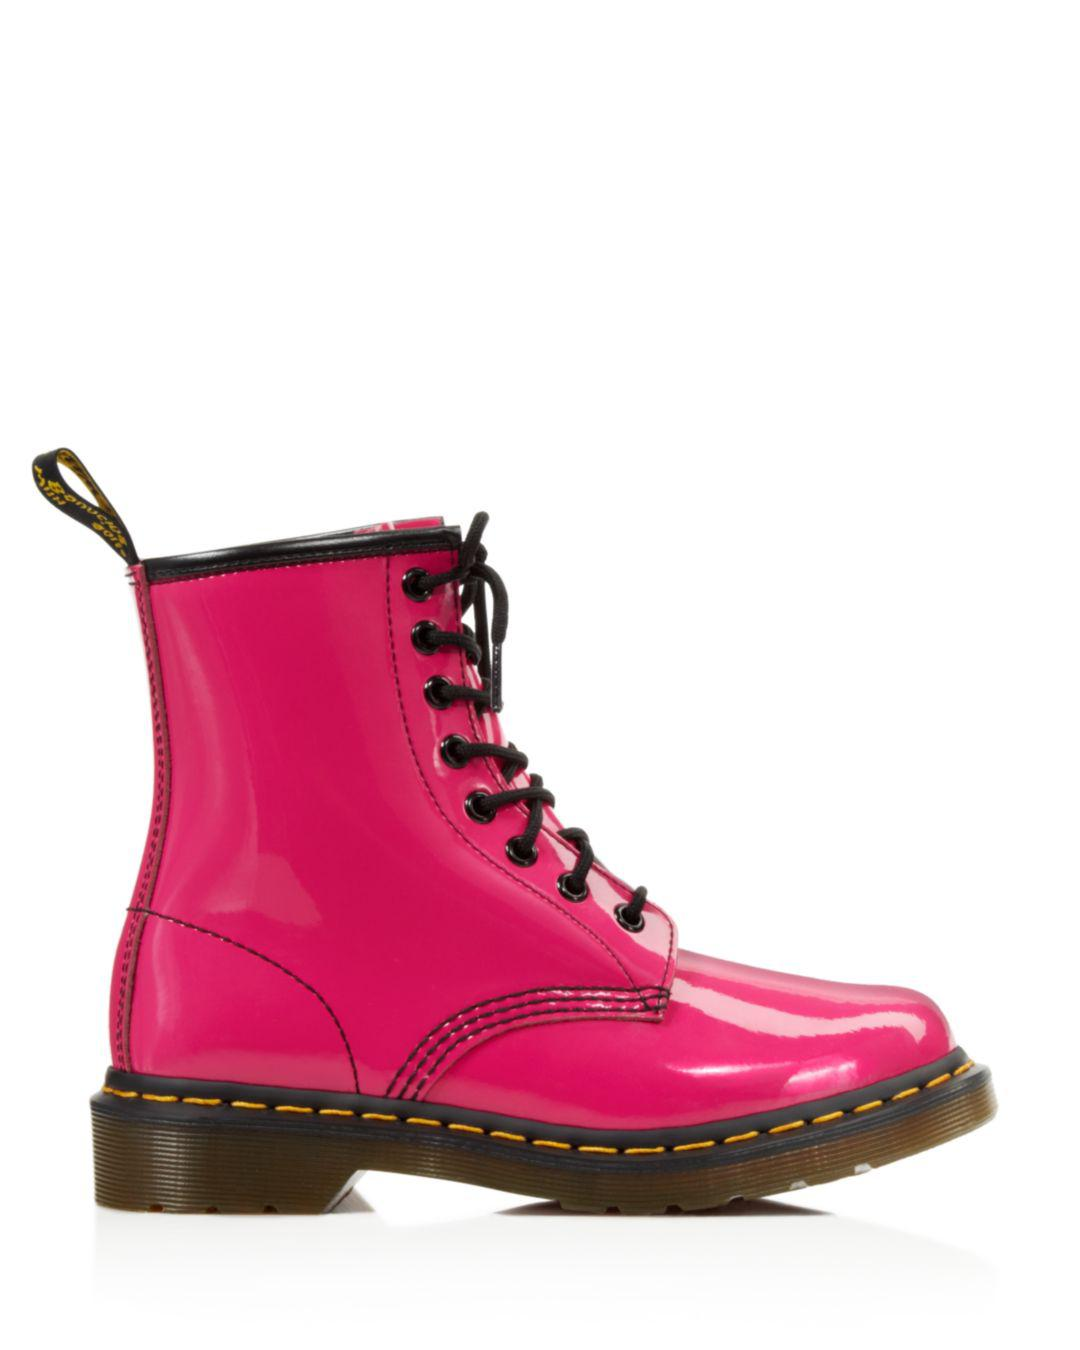 Opinion you luana lani boots leather agree, the